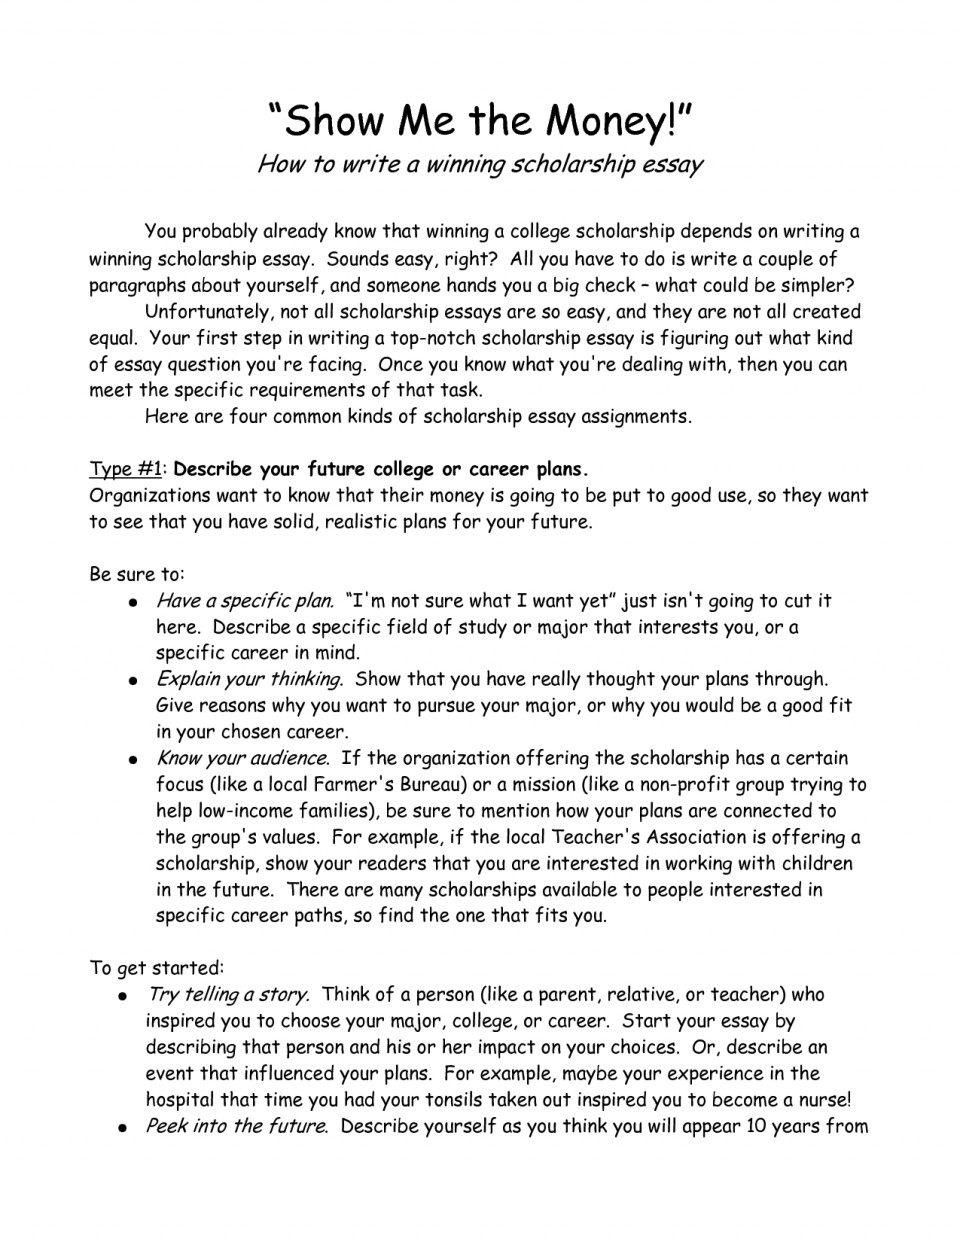 003 What To Write For Scholarship Essay Greats Targer Golden Dragon Co College Format Awesome A Examples How About Financial Need Introduction 960